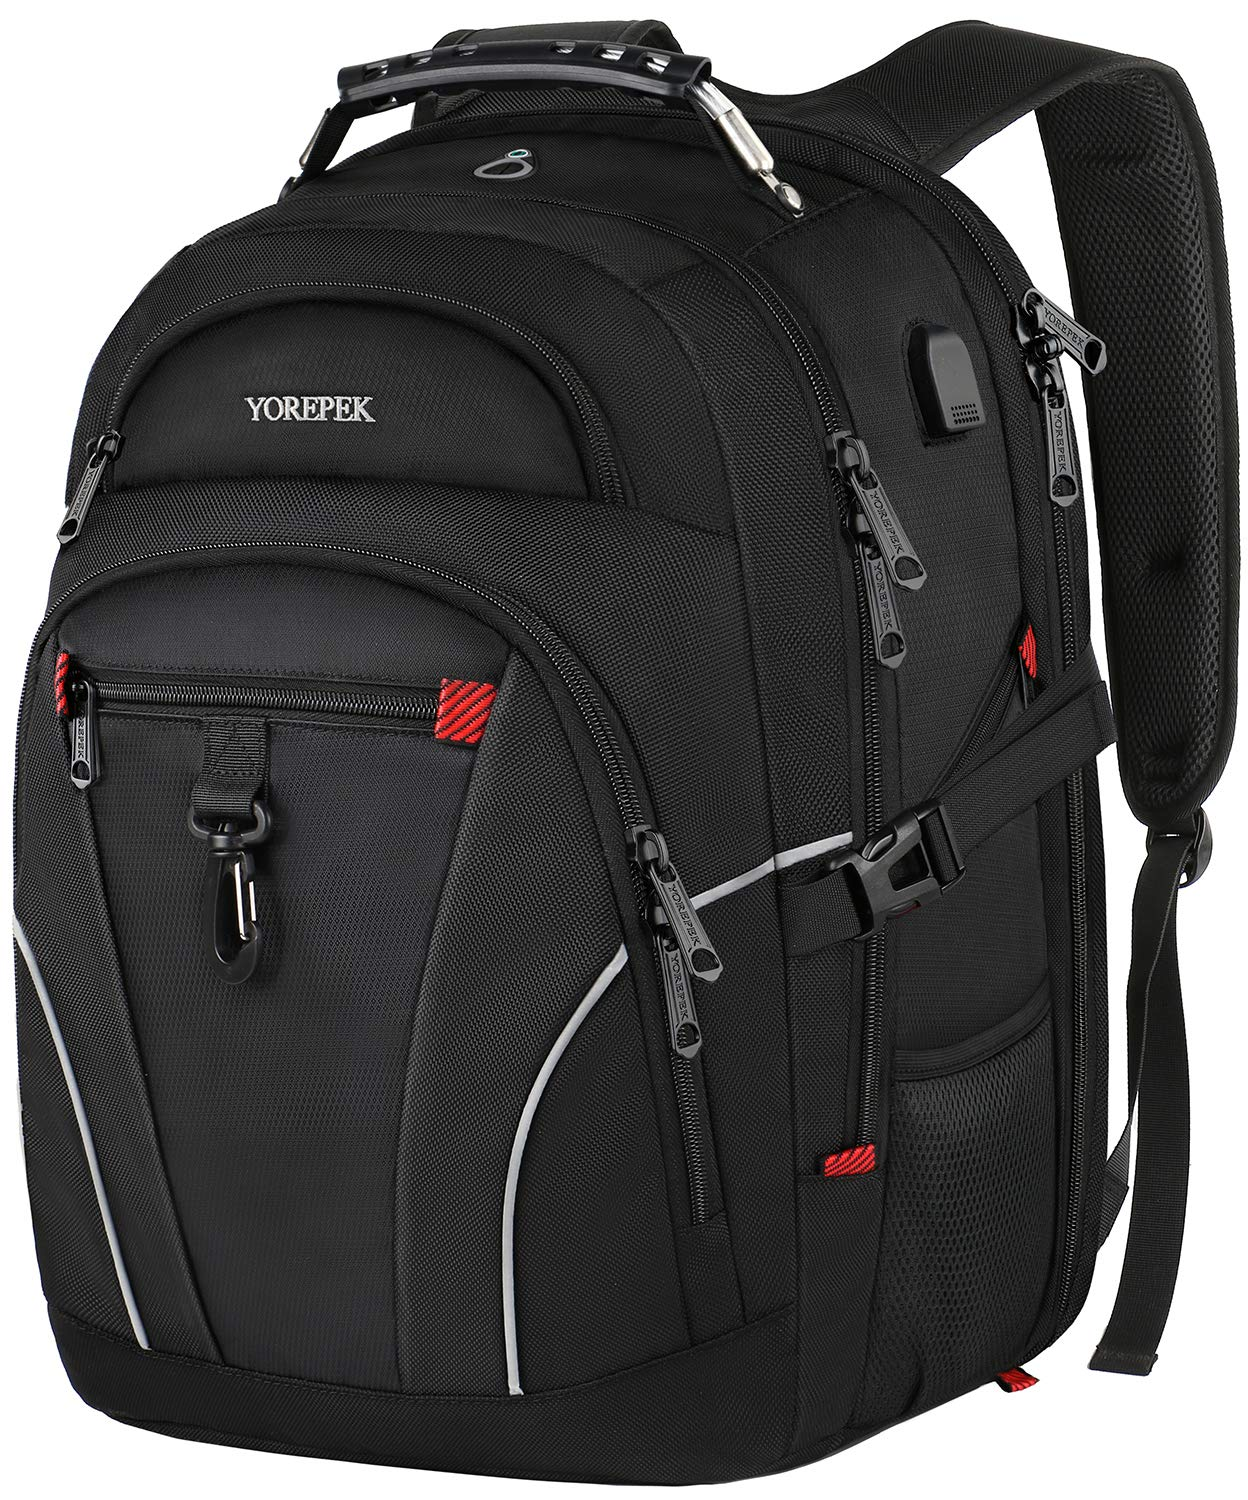 Travel Laptop Backpack,Large Capacity Backpack with USB Charging Port for Men Women,TSA Friendly Water Resistant College School Bookbag Computer Bag with Luggage Sleeve Fit 17inch Laptop,Black by YOREPEK